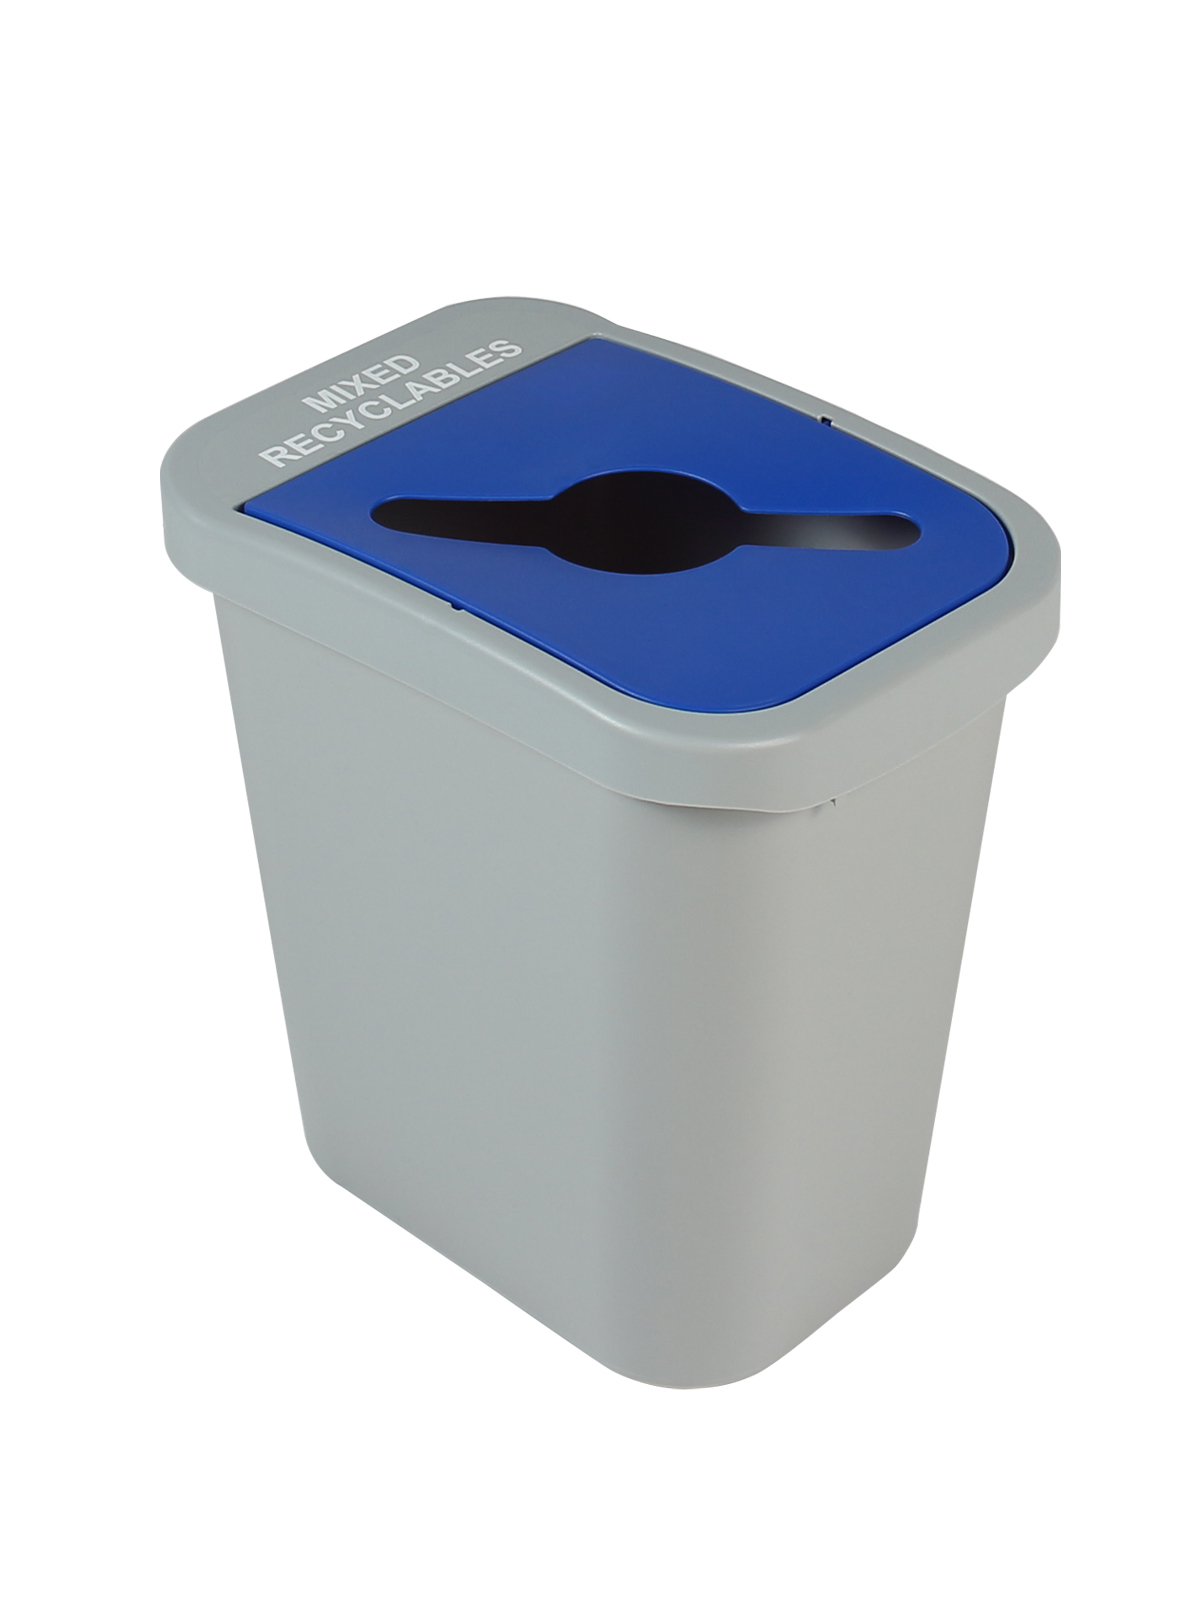 BILLI BOX - SINGLE 7 G - MIXED - GREY | BLUE - MIXED RECYCLABLES title=